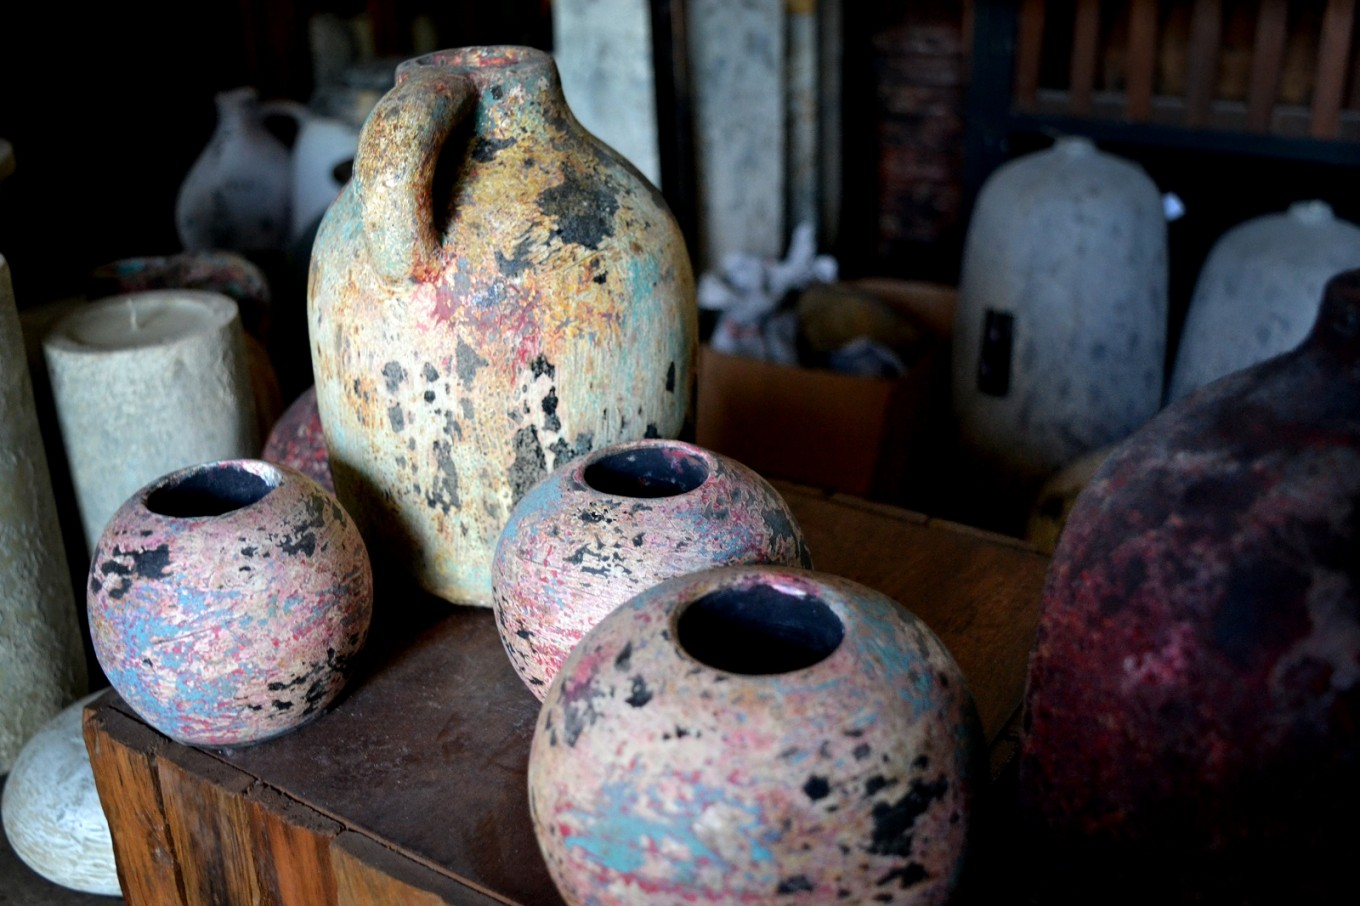 Agus Imron's rustic-style pottery is especially popular among European customers.